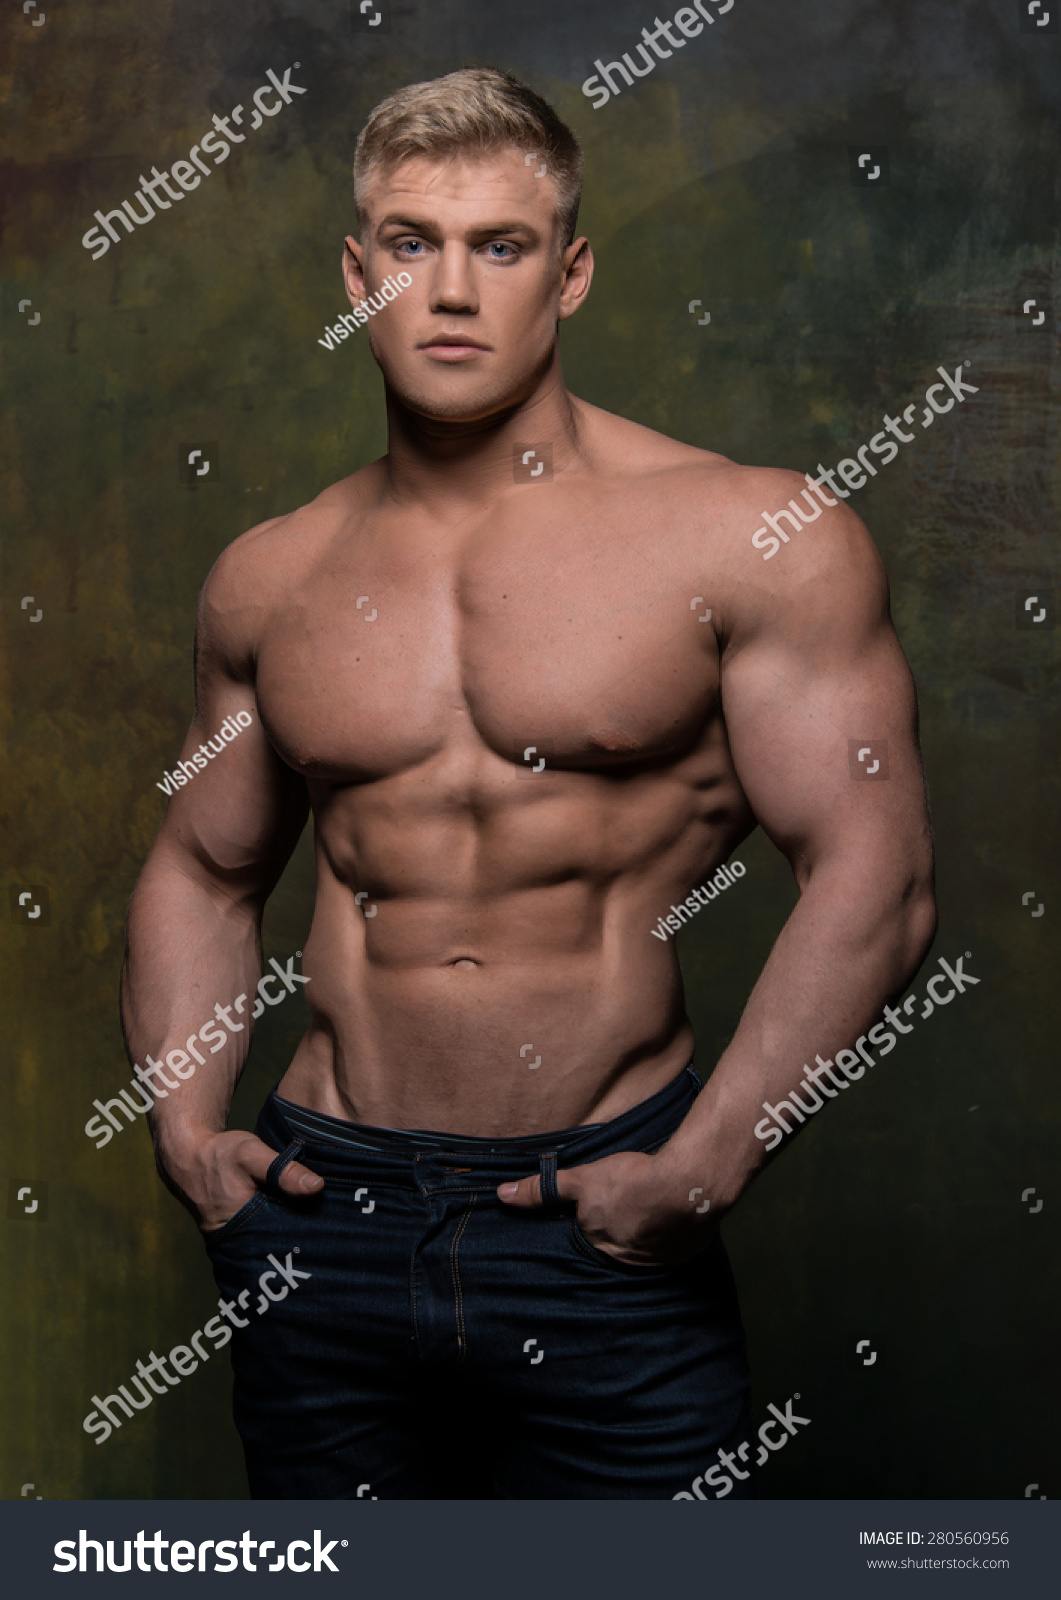 stock-photo-fitness-male-model-sergei-mi